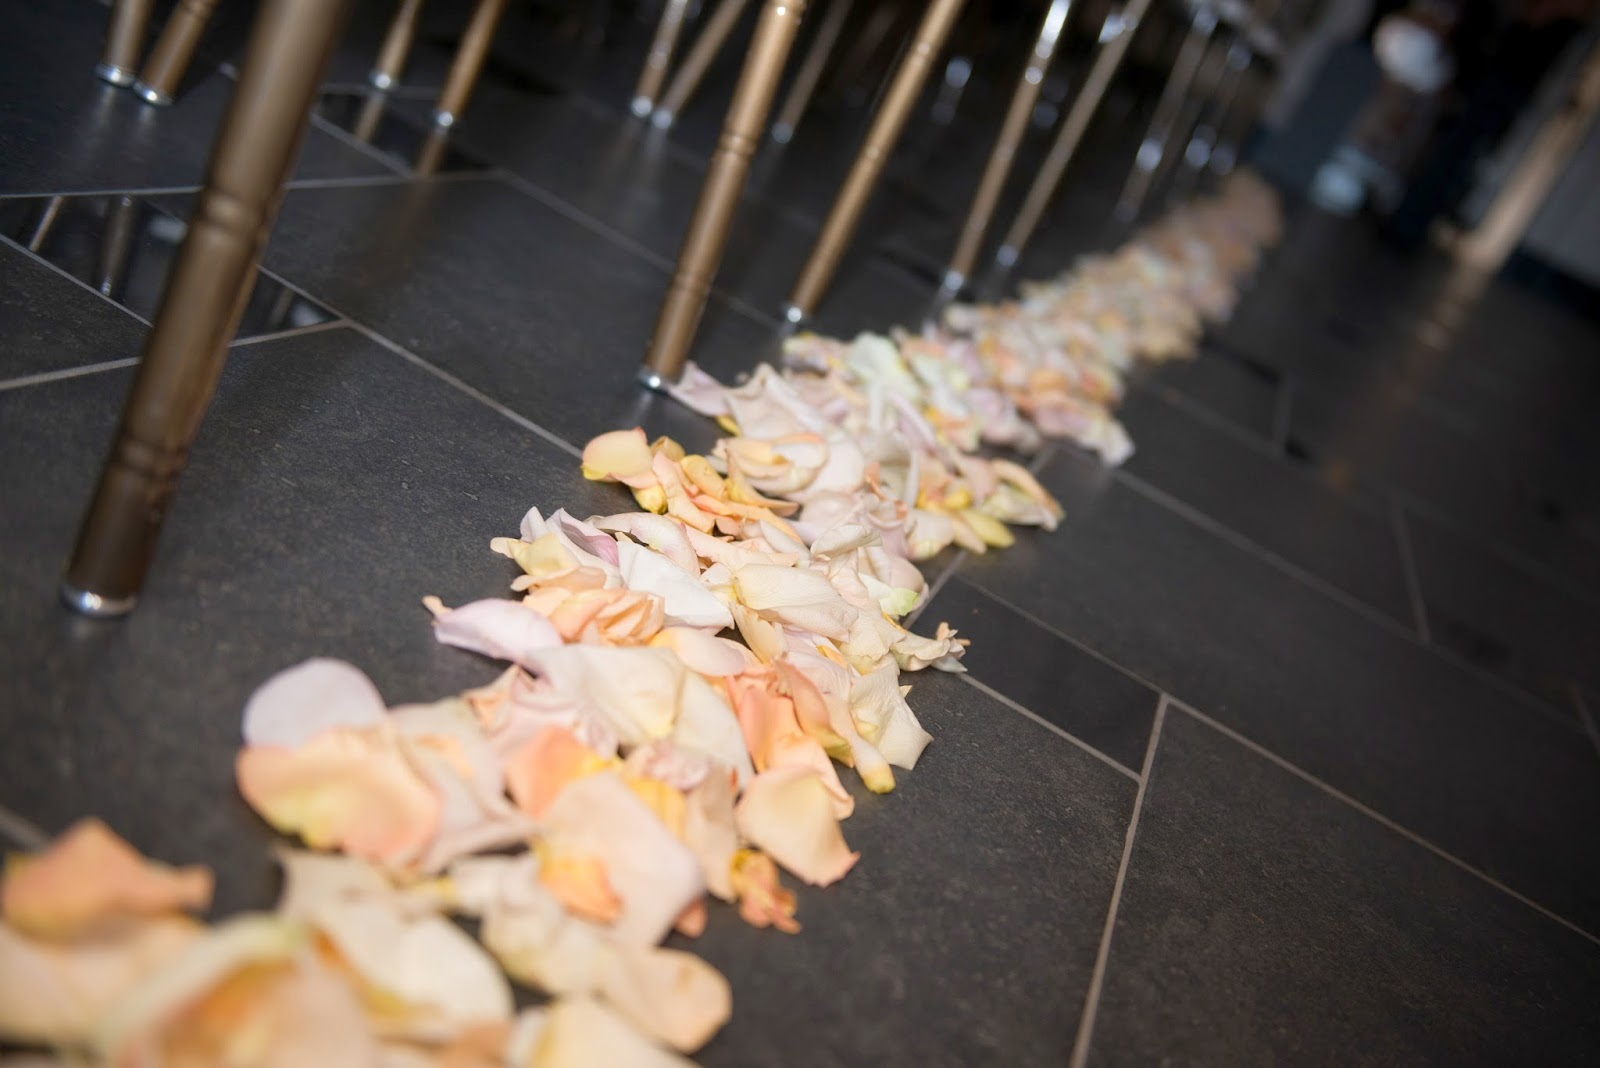 Sixty State Place Wedding - Rose Petal Aisle - Downtown Albany NY Wedding - Old Historical Bank Wedding - Historical Venue Wedding - Upstate NY - Splendid Stems Floral Designs